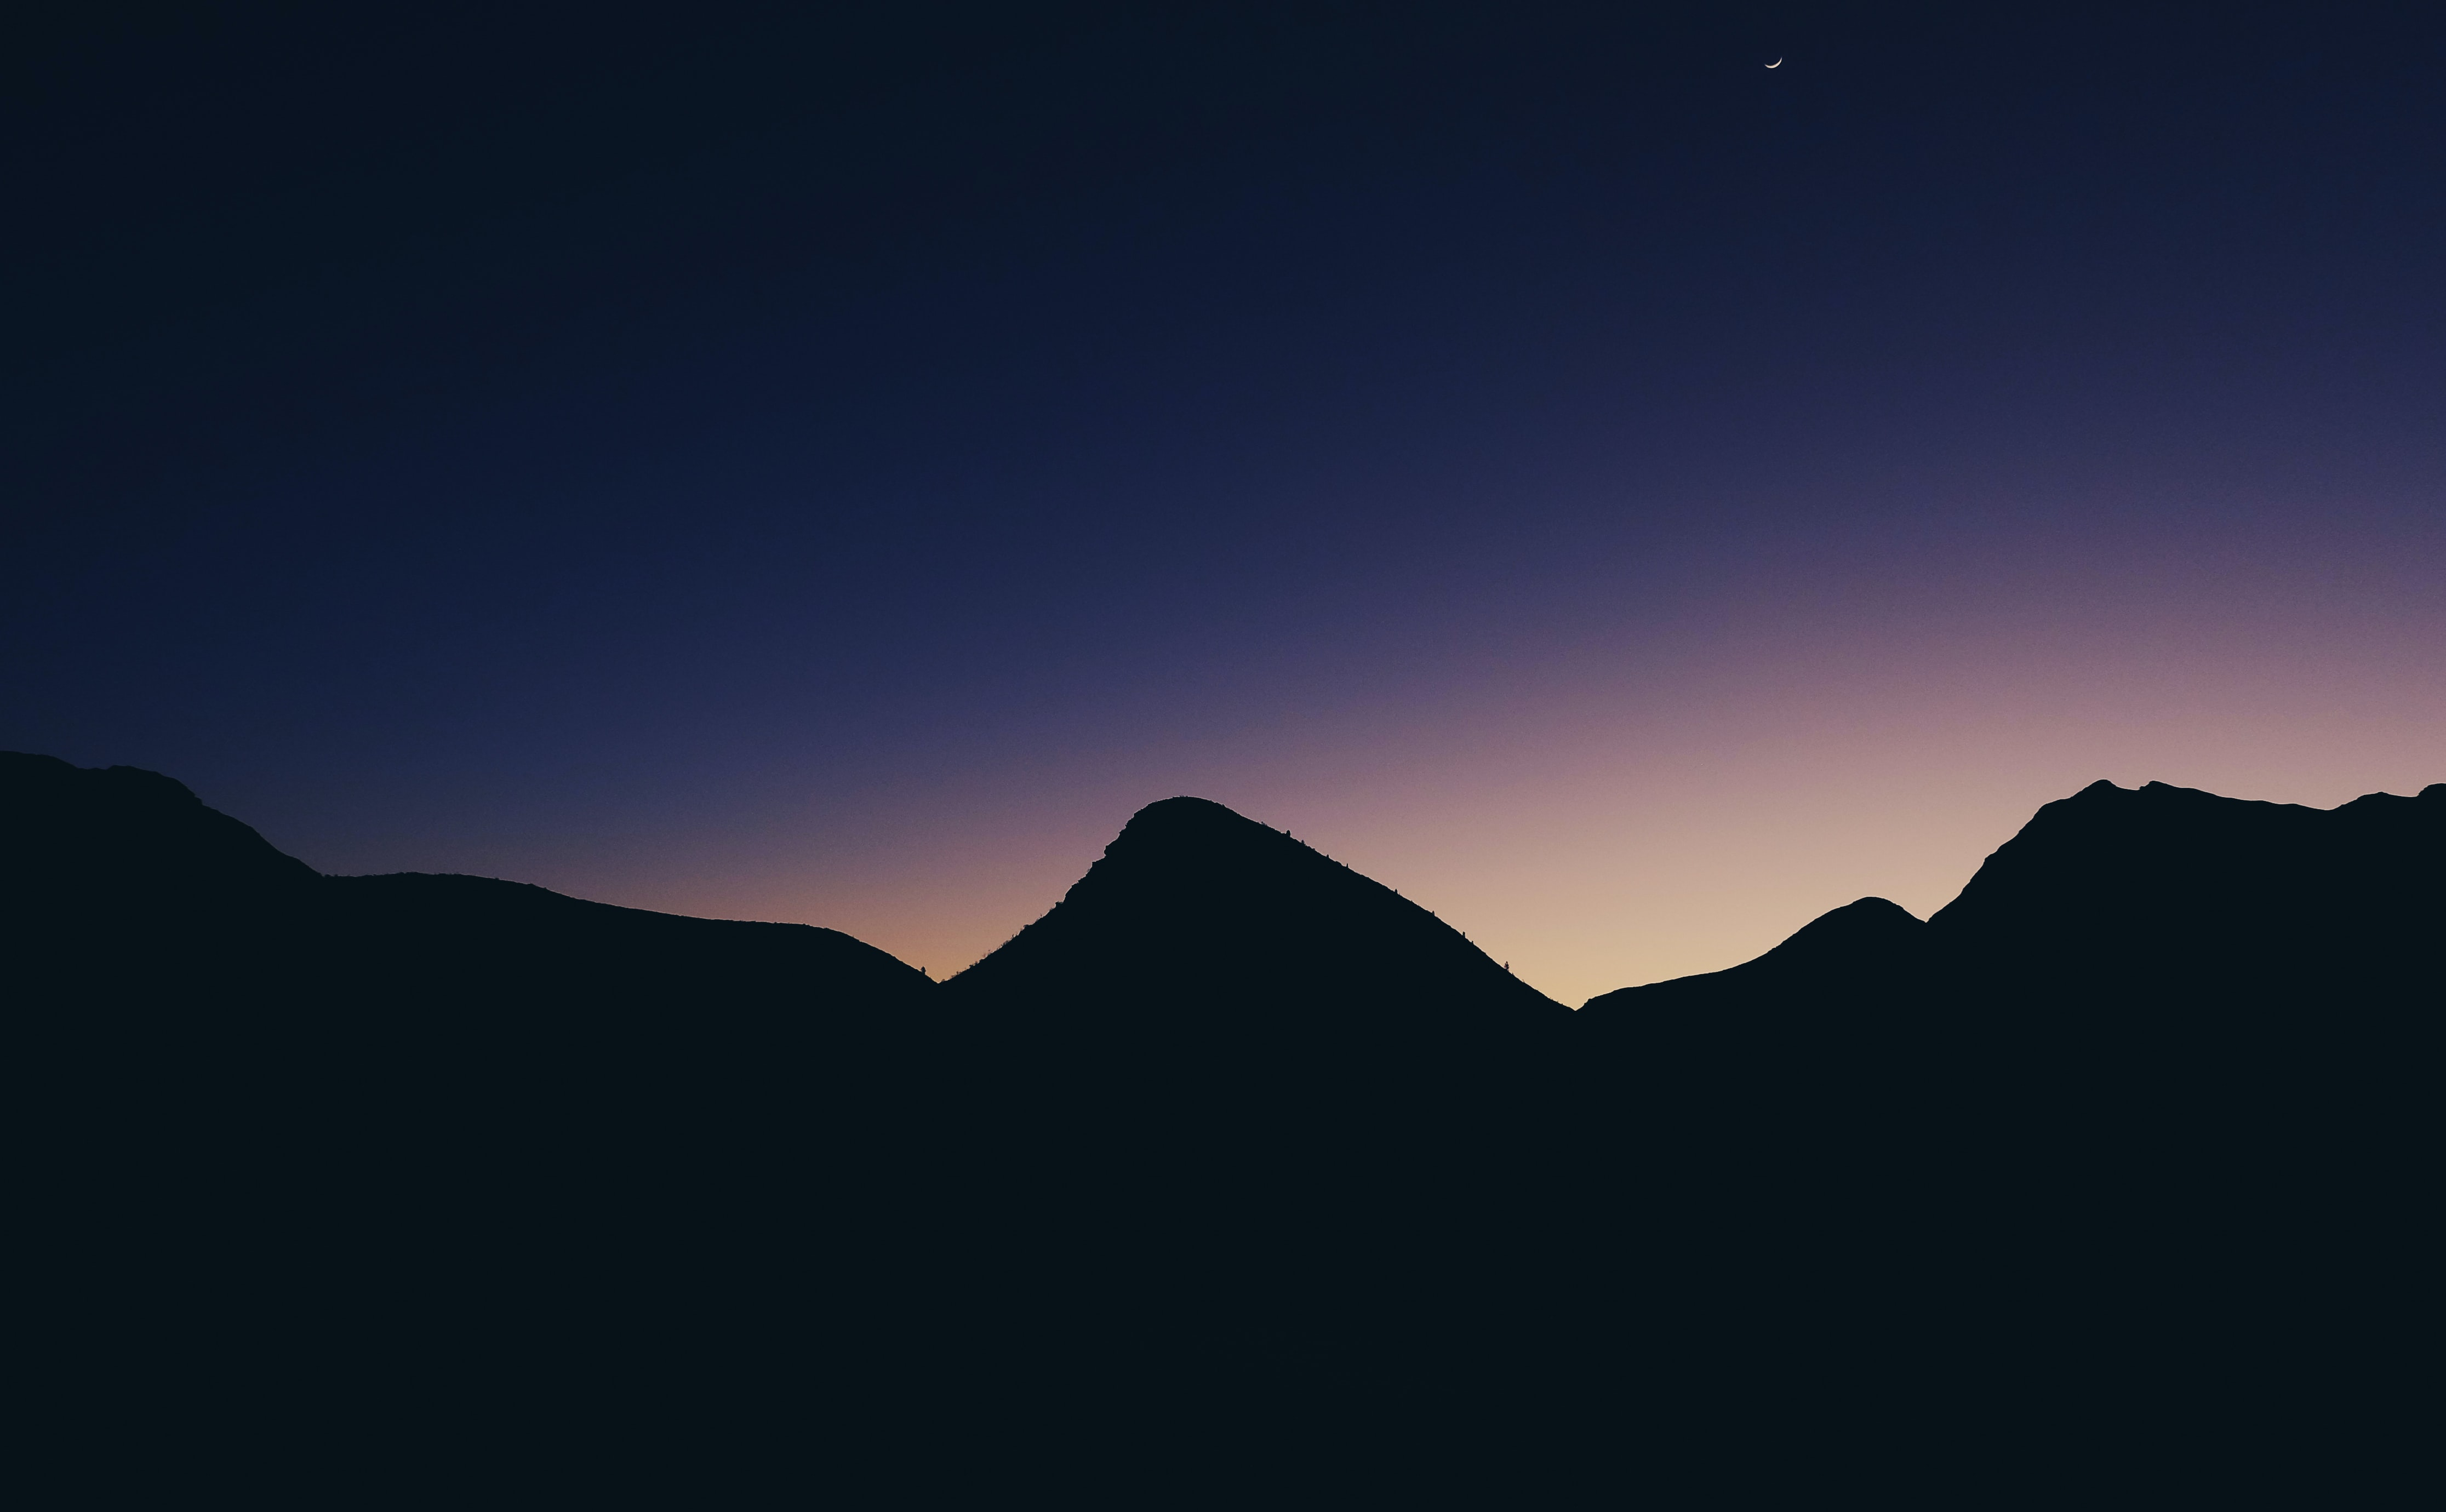 silhouette of mountain hill